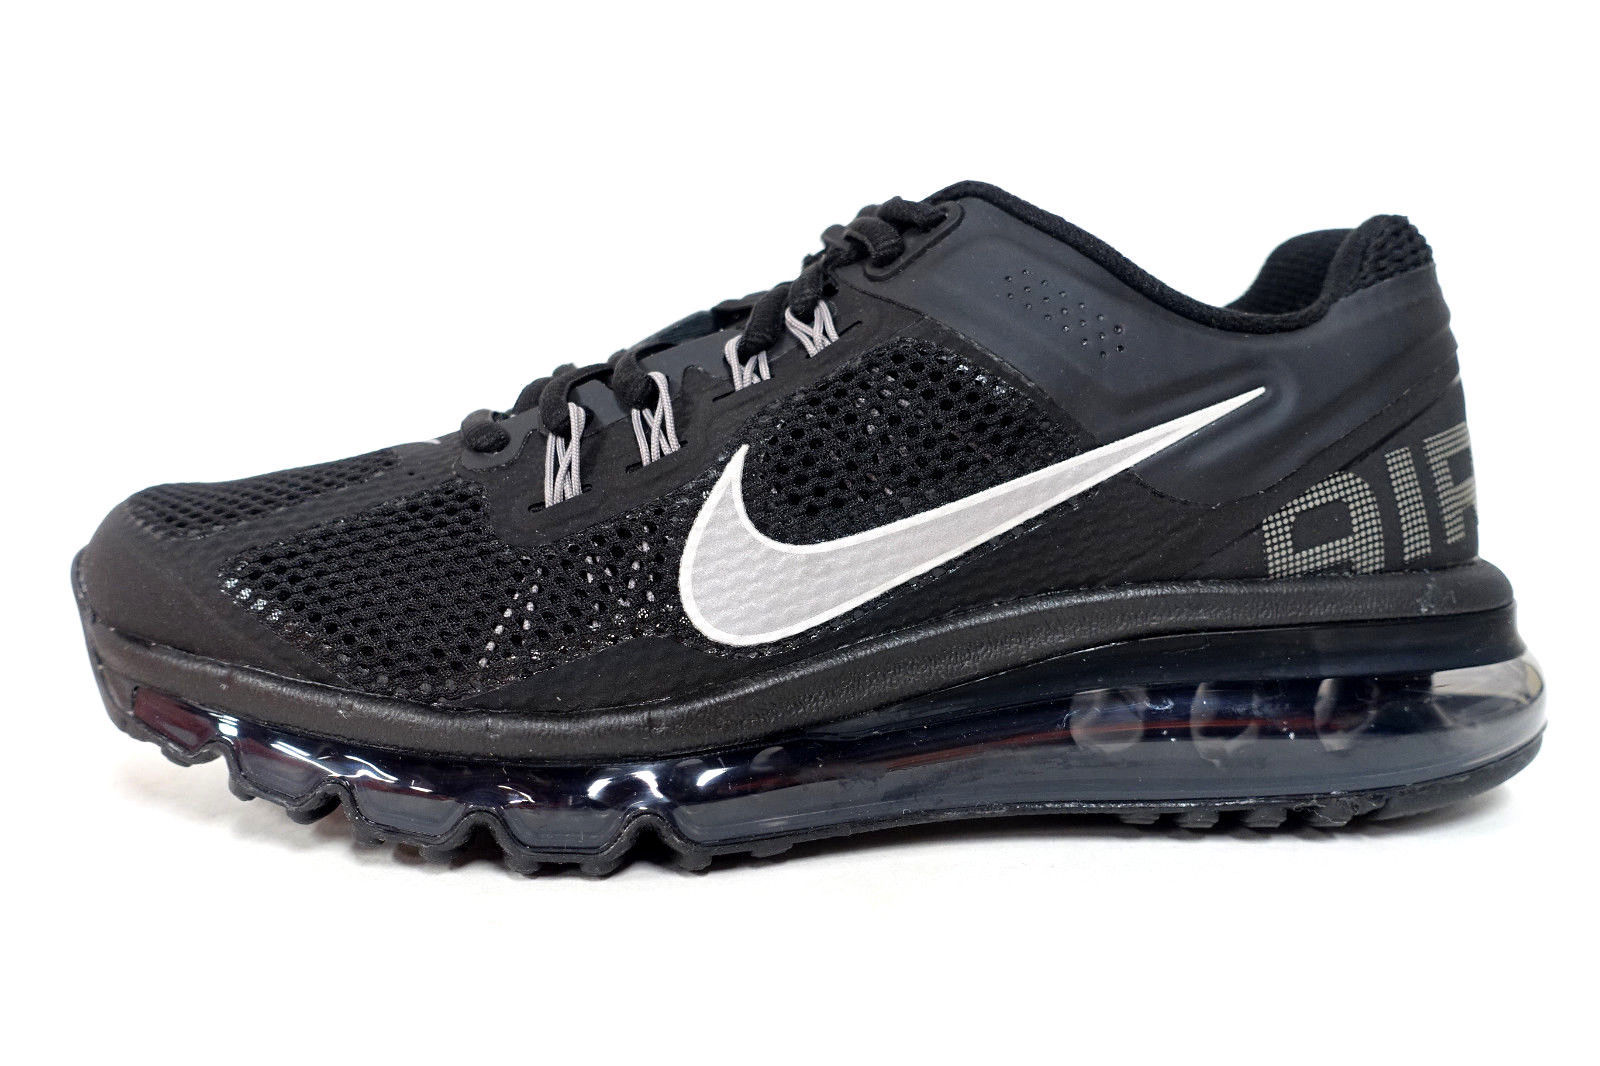 0b82a2479649a NIKE pour FEMMES Air Max + 2013 Chaussures and 50 similar items. S l1600